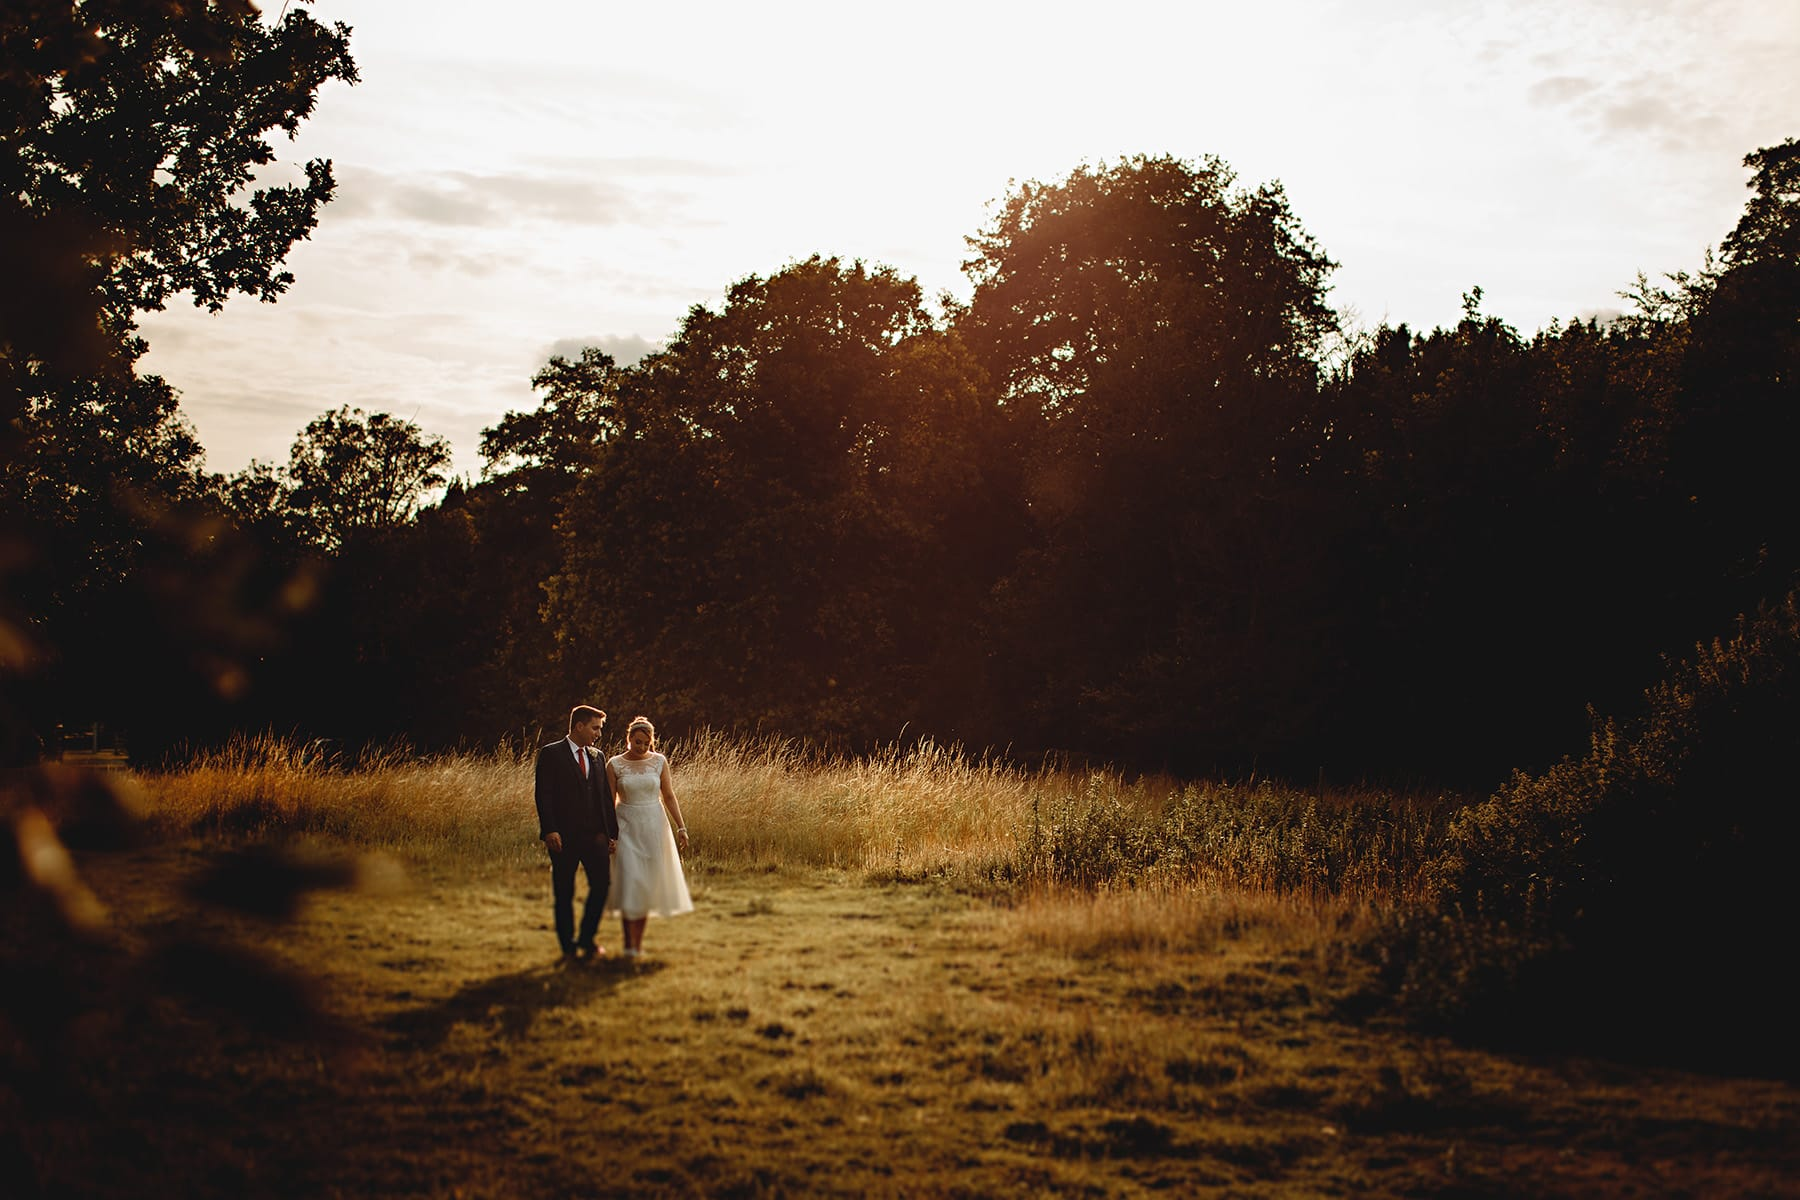 the bride and groom walking around in golden sunlinght on the Blankney Estate on their wedding day